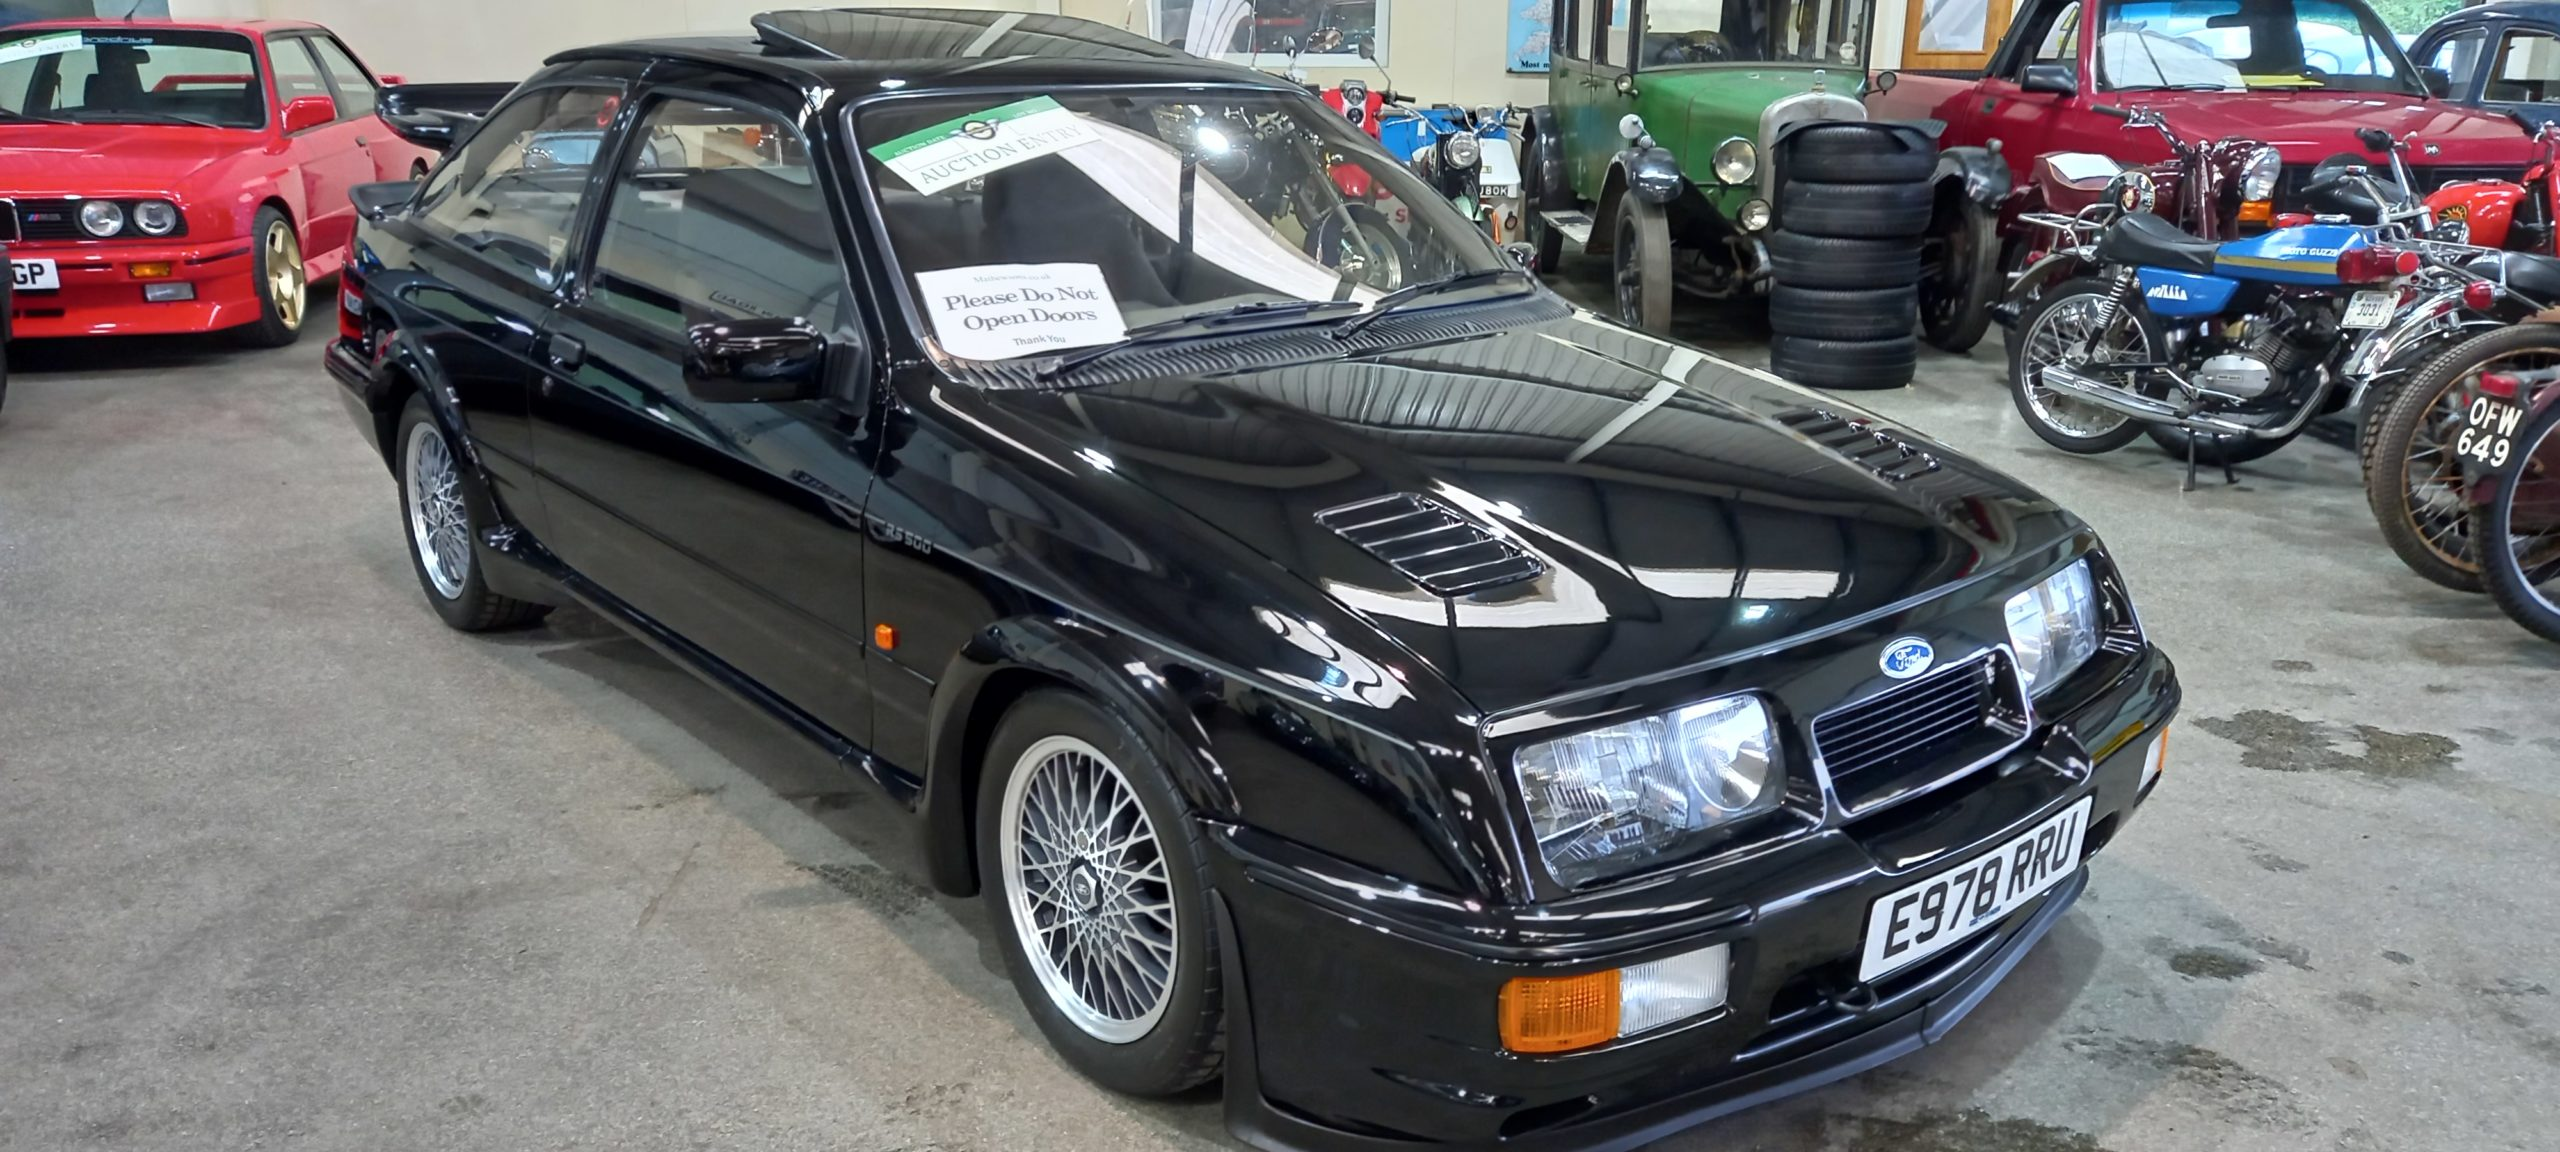 Market Watch: Blue-collar to blue-chip for Sierra RS500